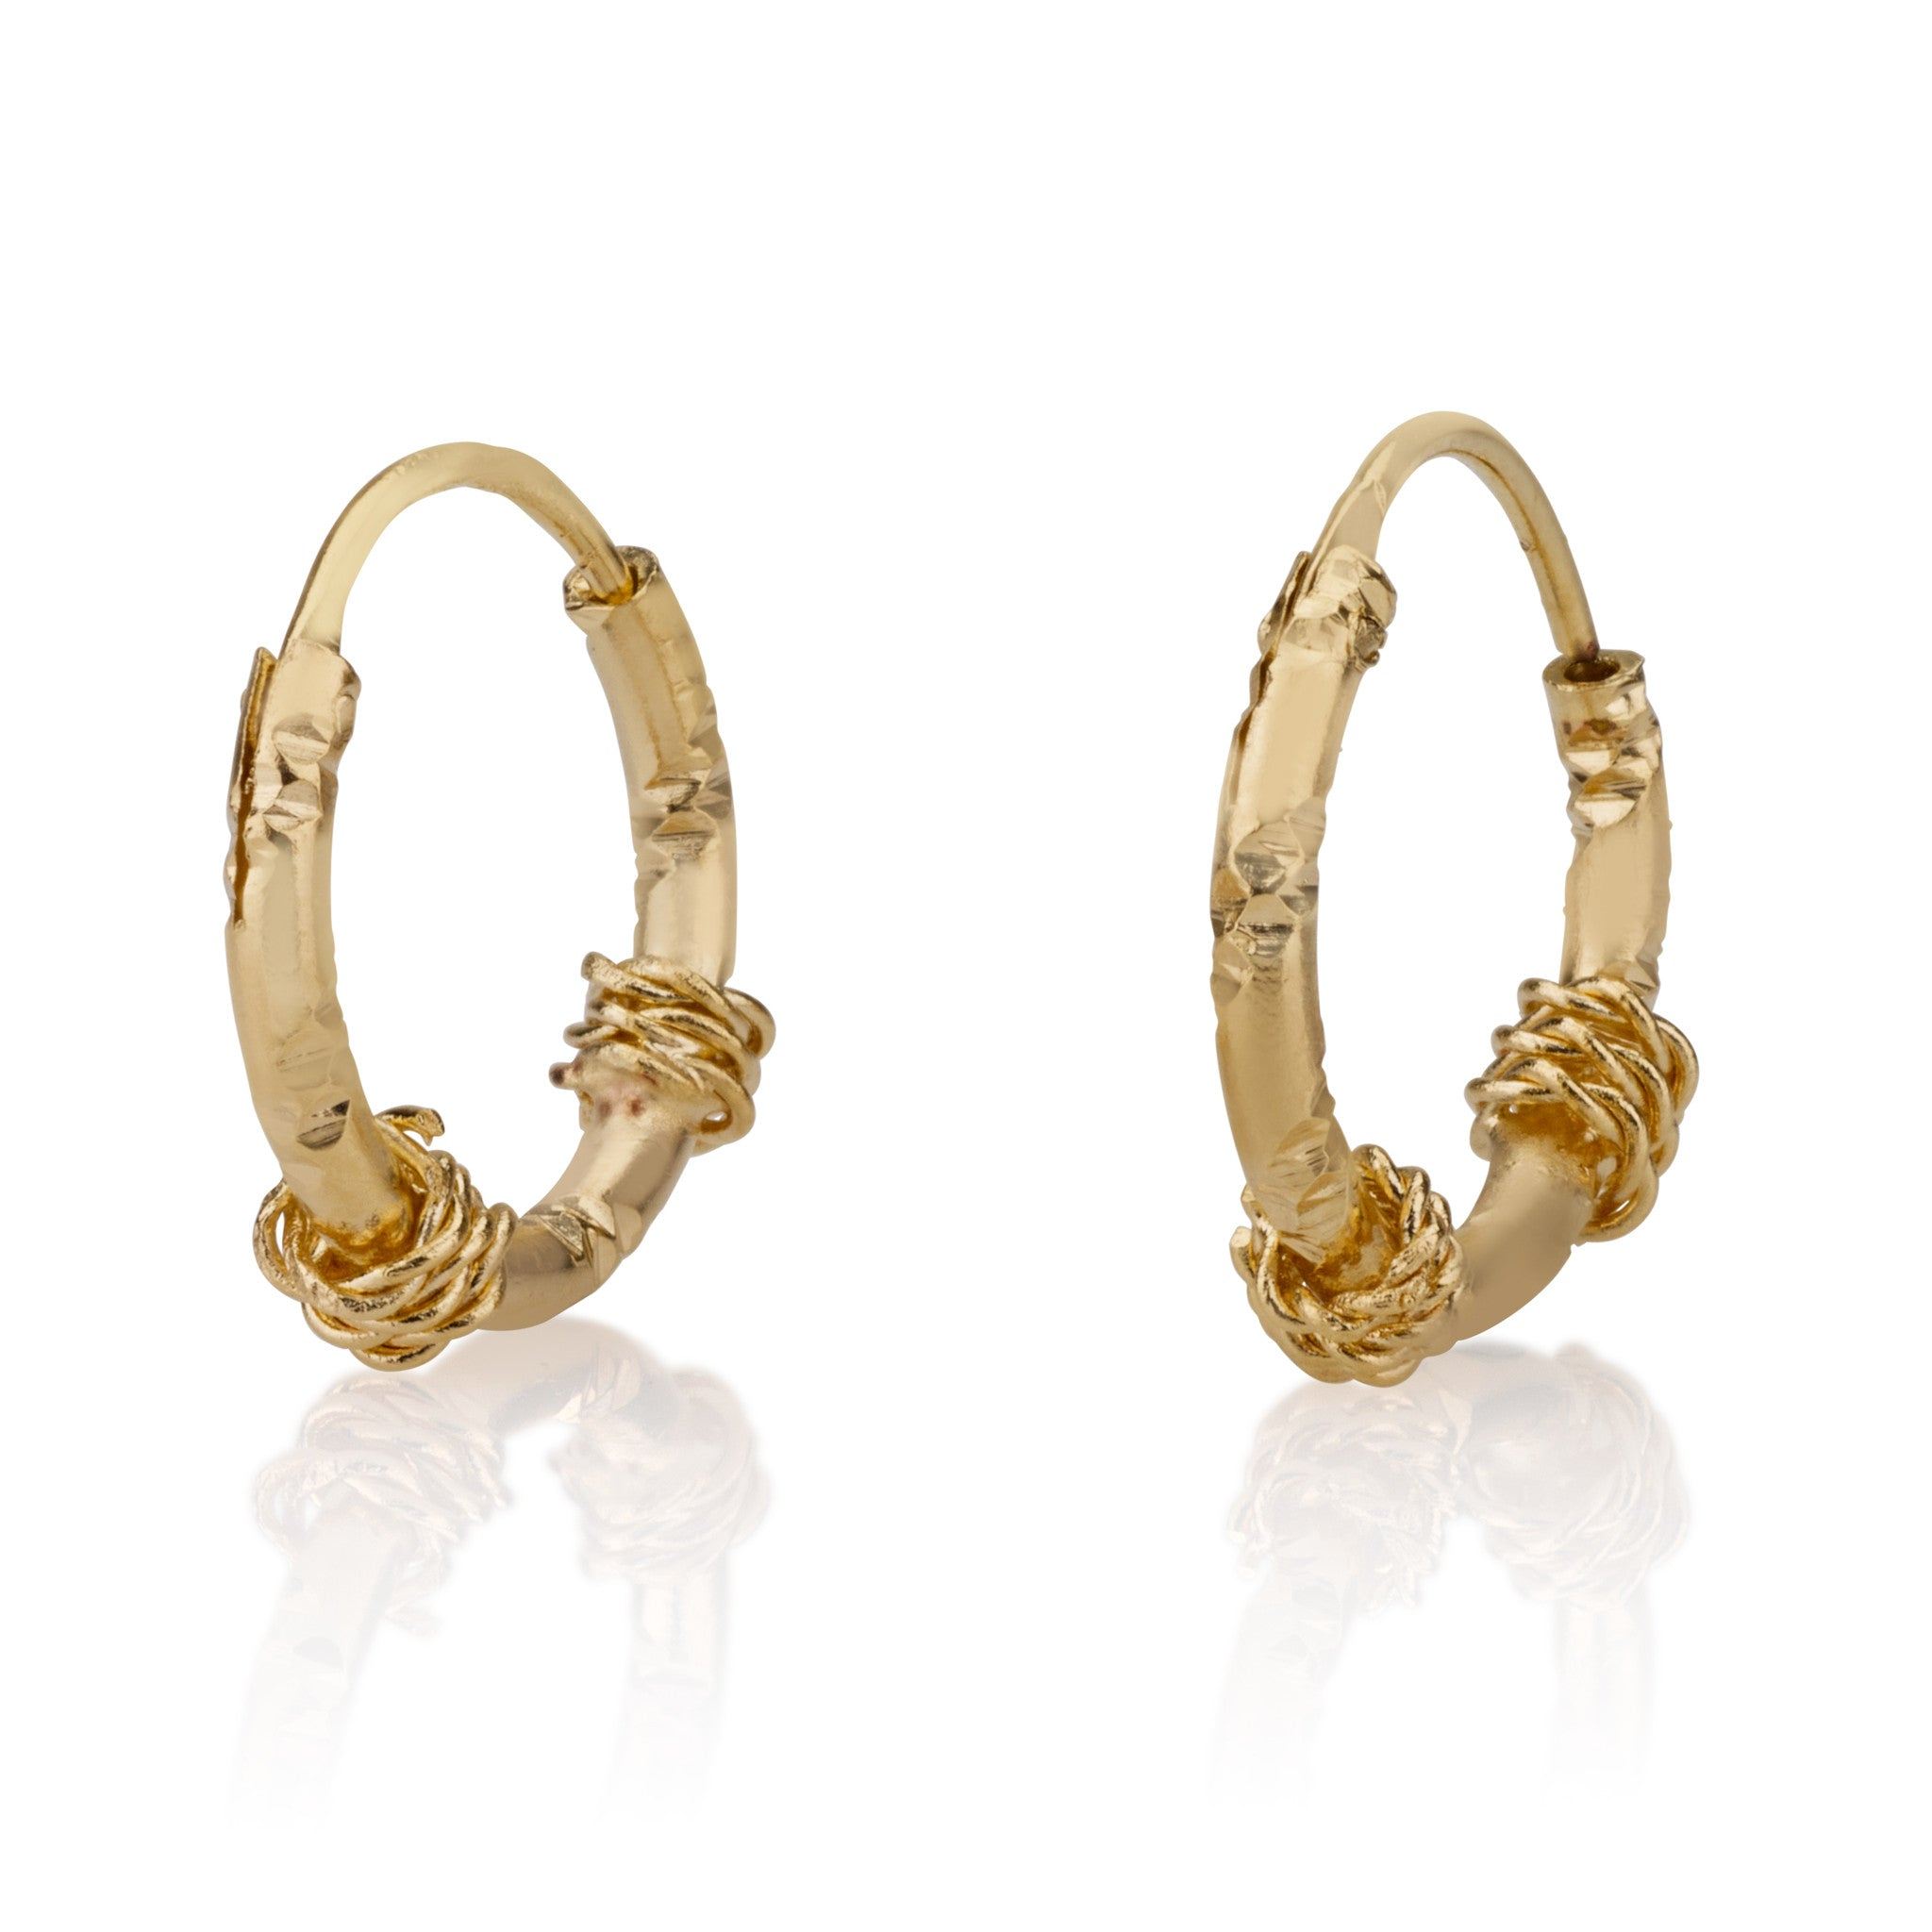 products de craig lis gold rings summer ear earrings fleur market french